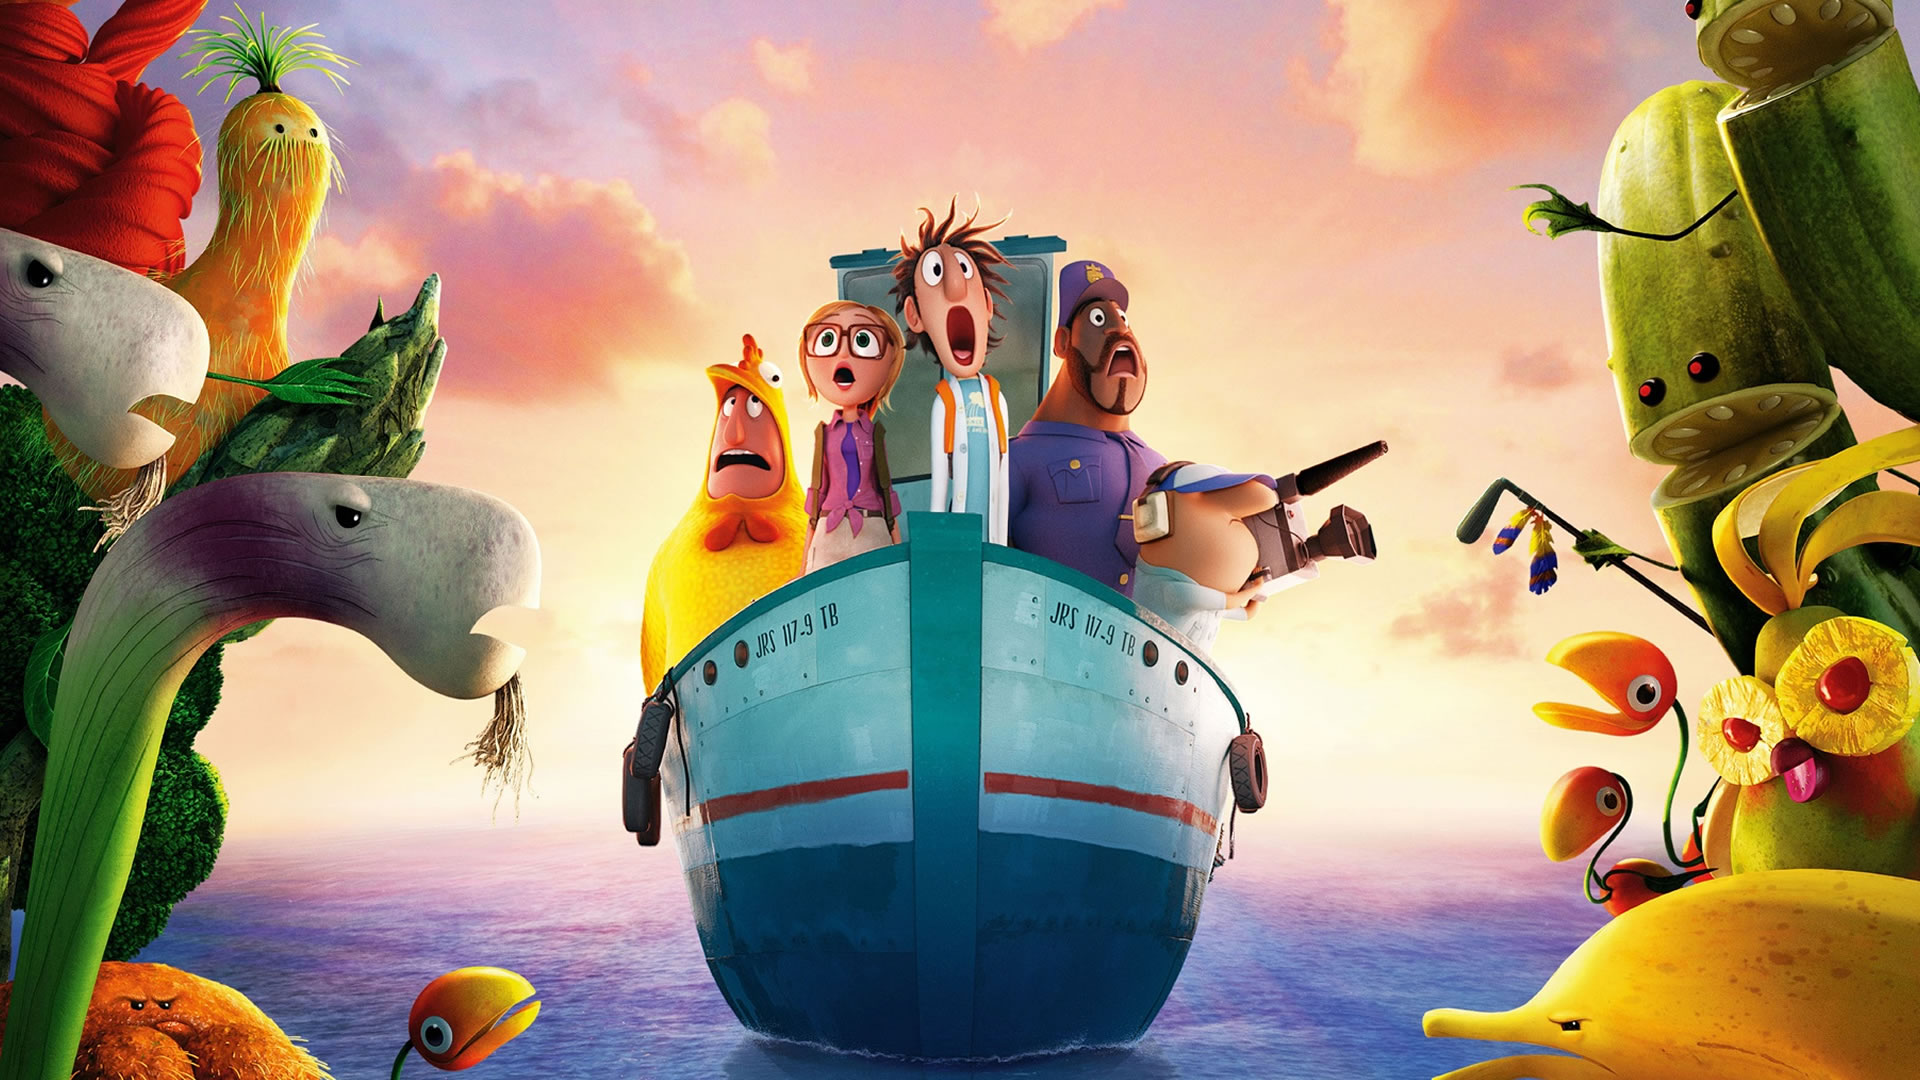 Download Wallpaper Cloudy With A Chance Of Meatballs 2